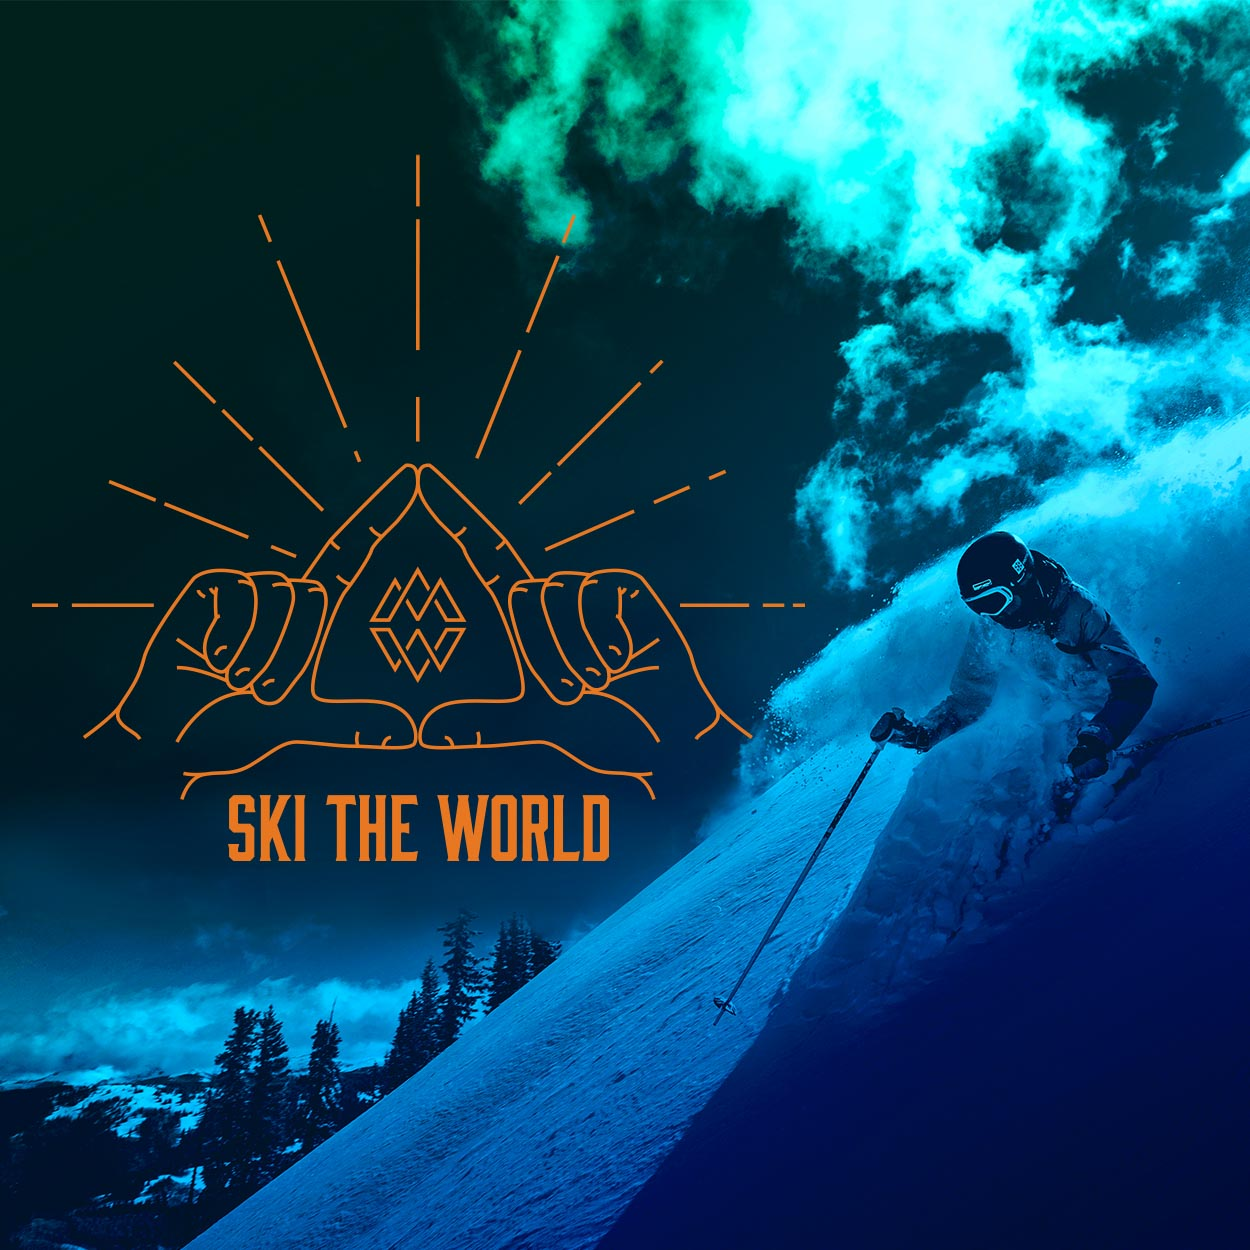 Highway billboard for the Mountain Collective featuring a blue skier going downhill.